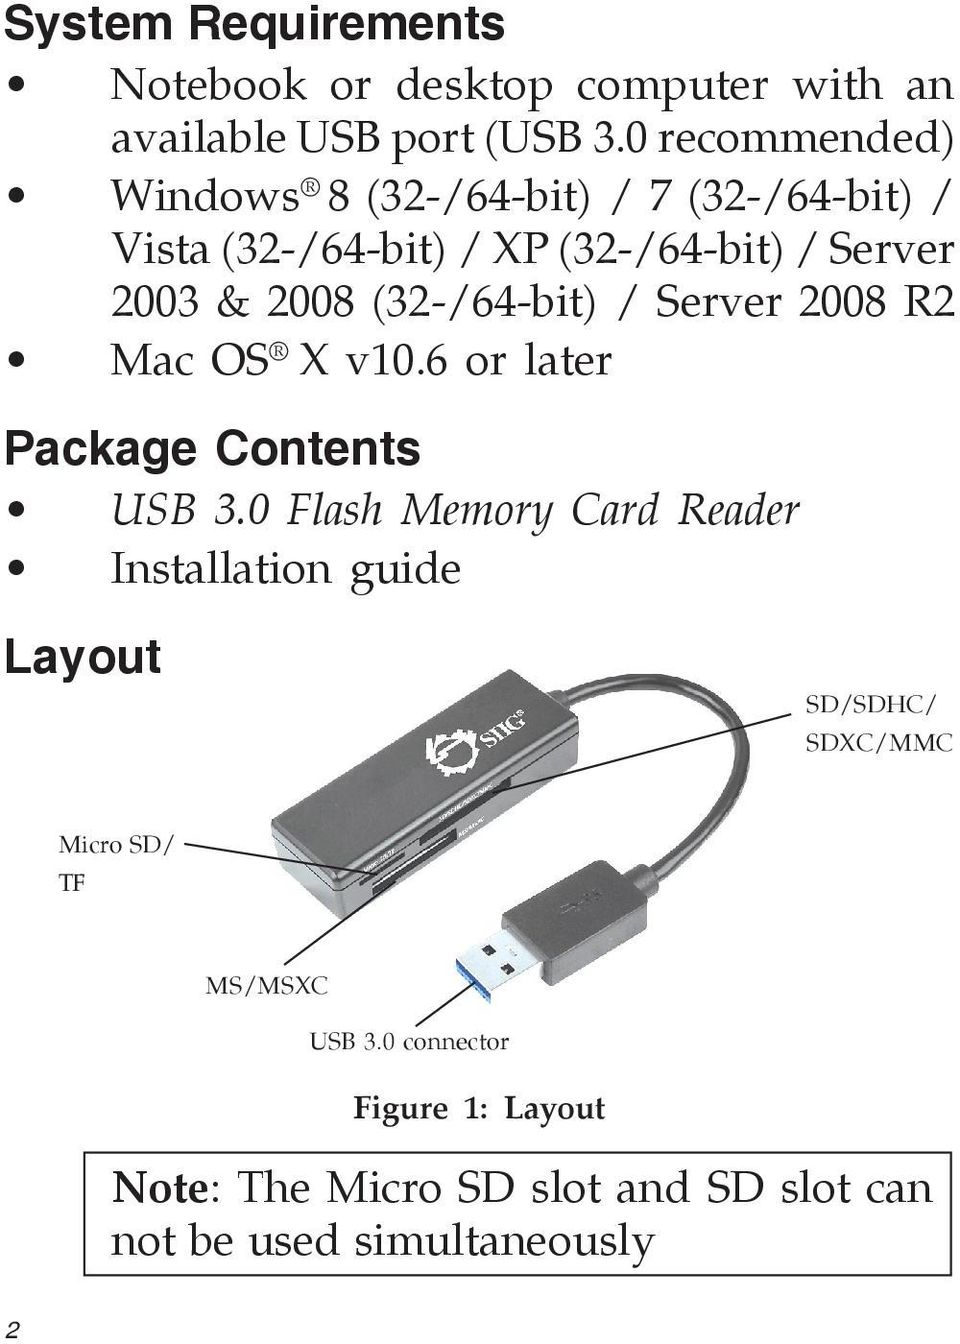 (32-/64-bit) / Server 2008 R2 Mac OS X v10.6 or later Package Contents USB 3.